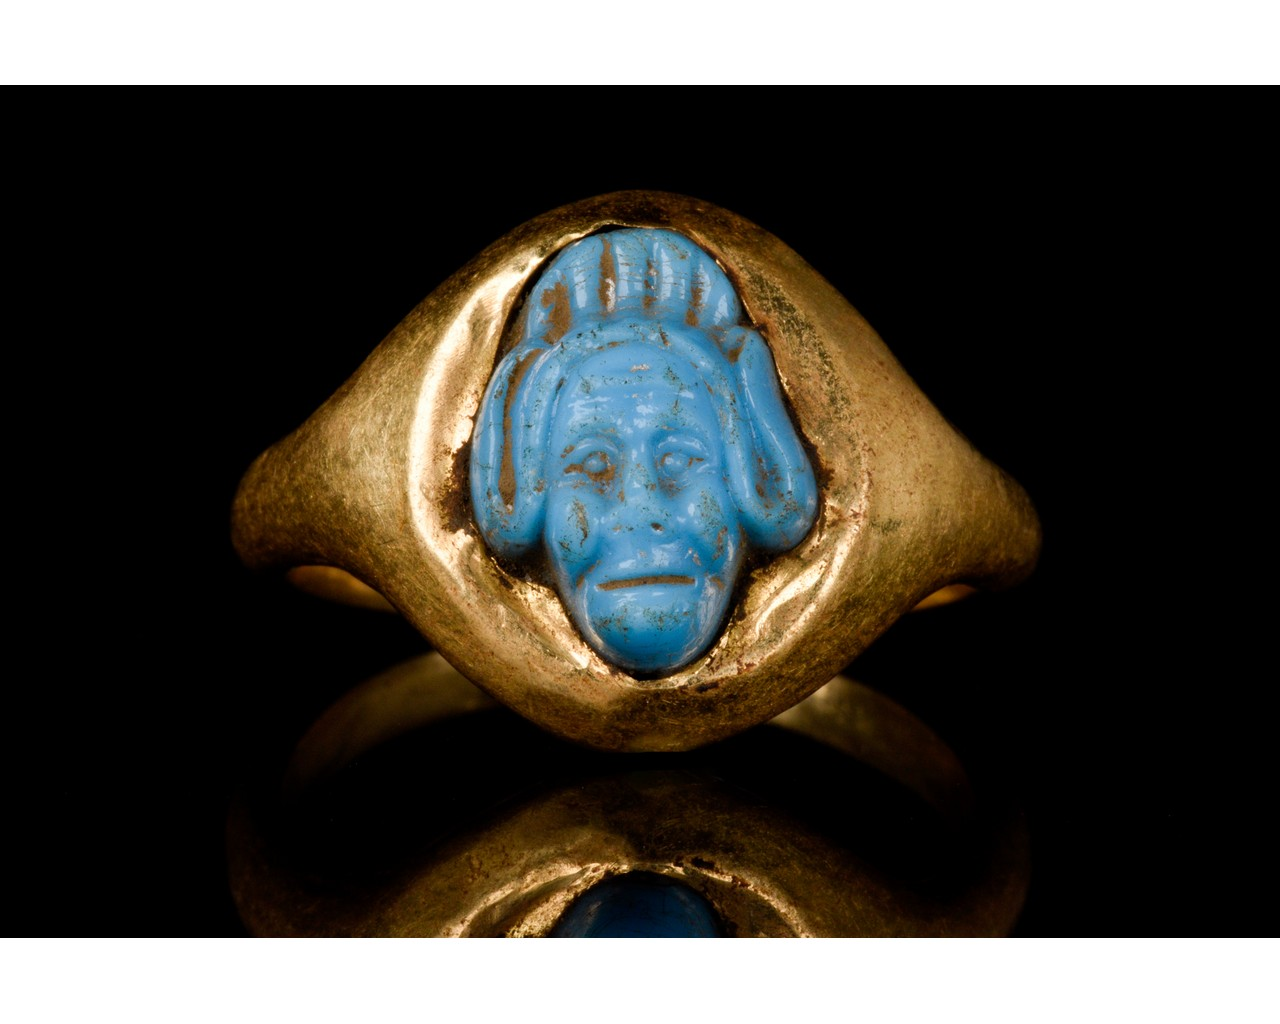 PHOENICIAN FAIENCE GODDESS HEAD IN A GOLD RING - Image 2 of 6